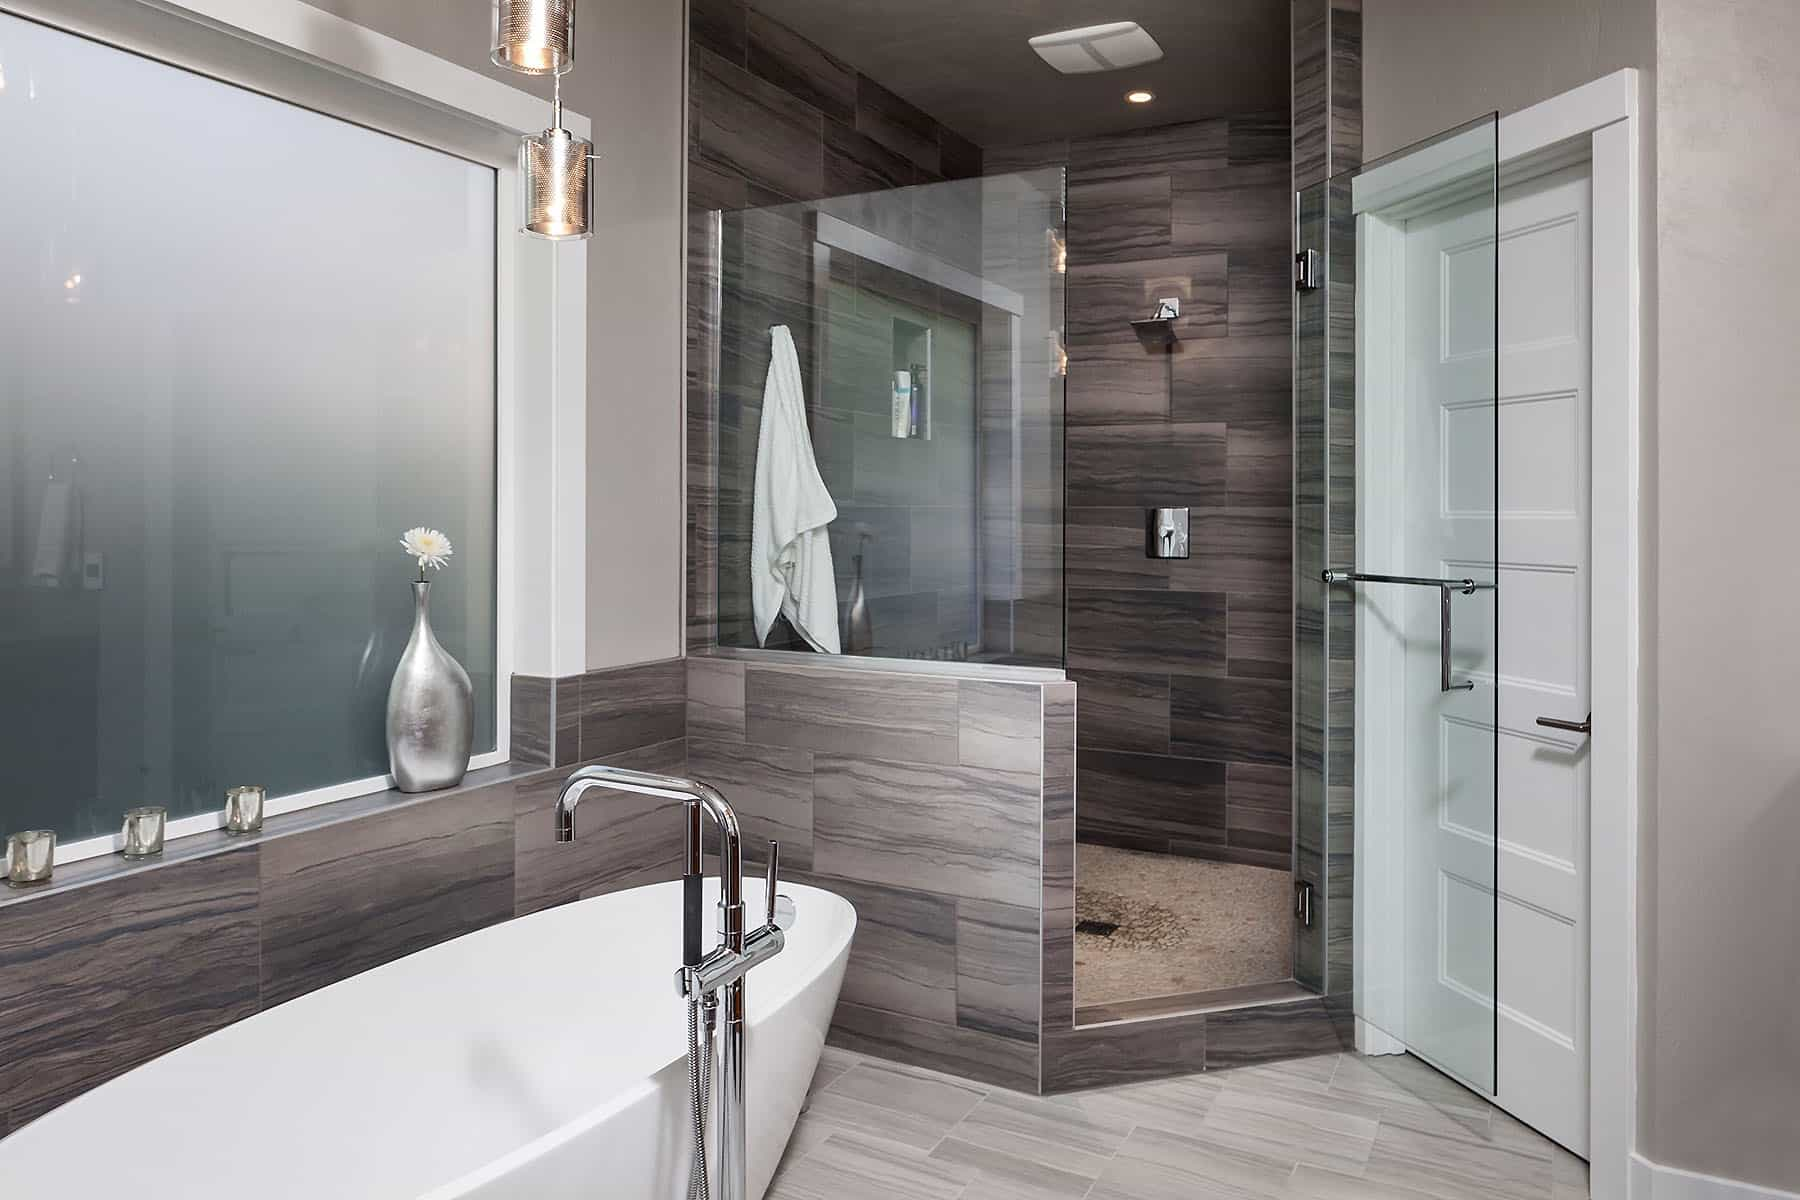 Modern And Masculine Spa Bathroom With Frosted Glass Windows (Image 22 of 29)